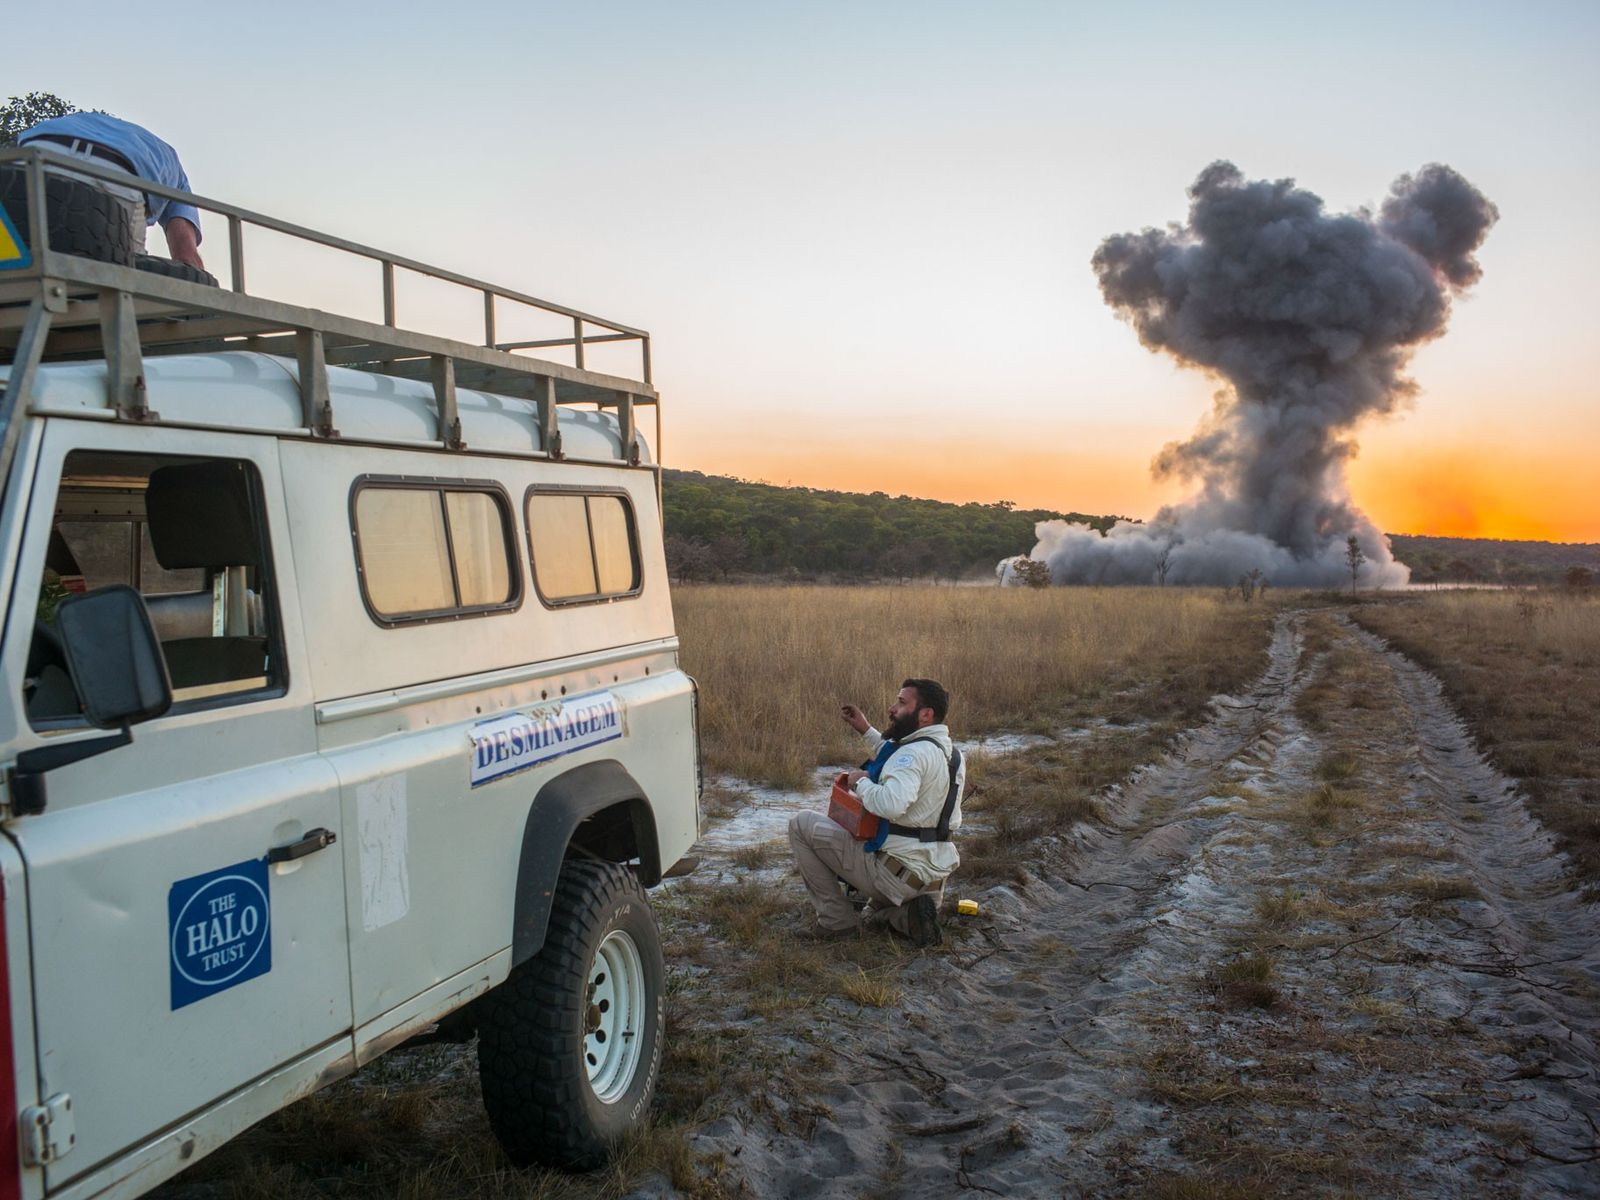 Angola was heavily mined during decades of civil war. Now, the goverment has partnered with conservationists ...